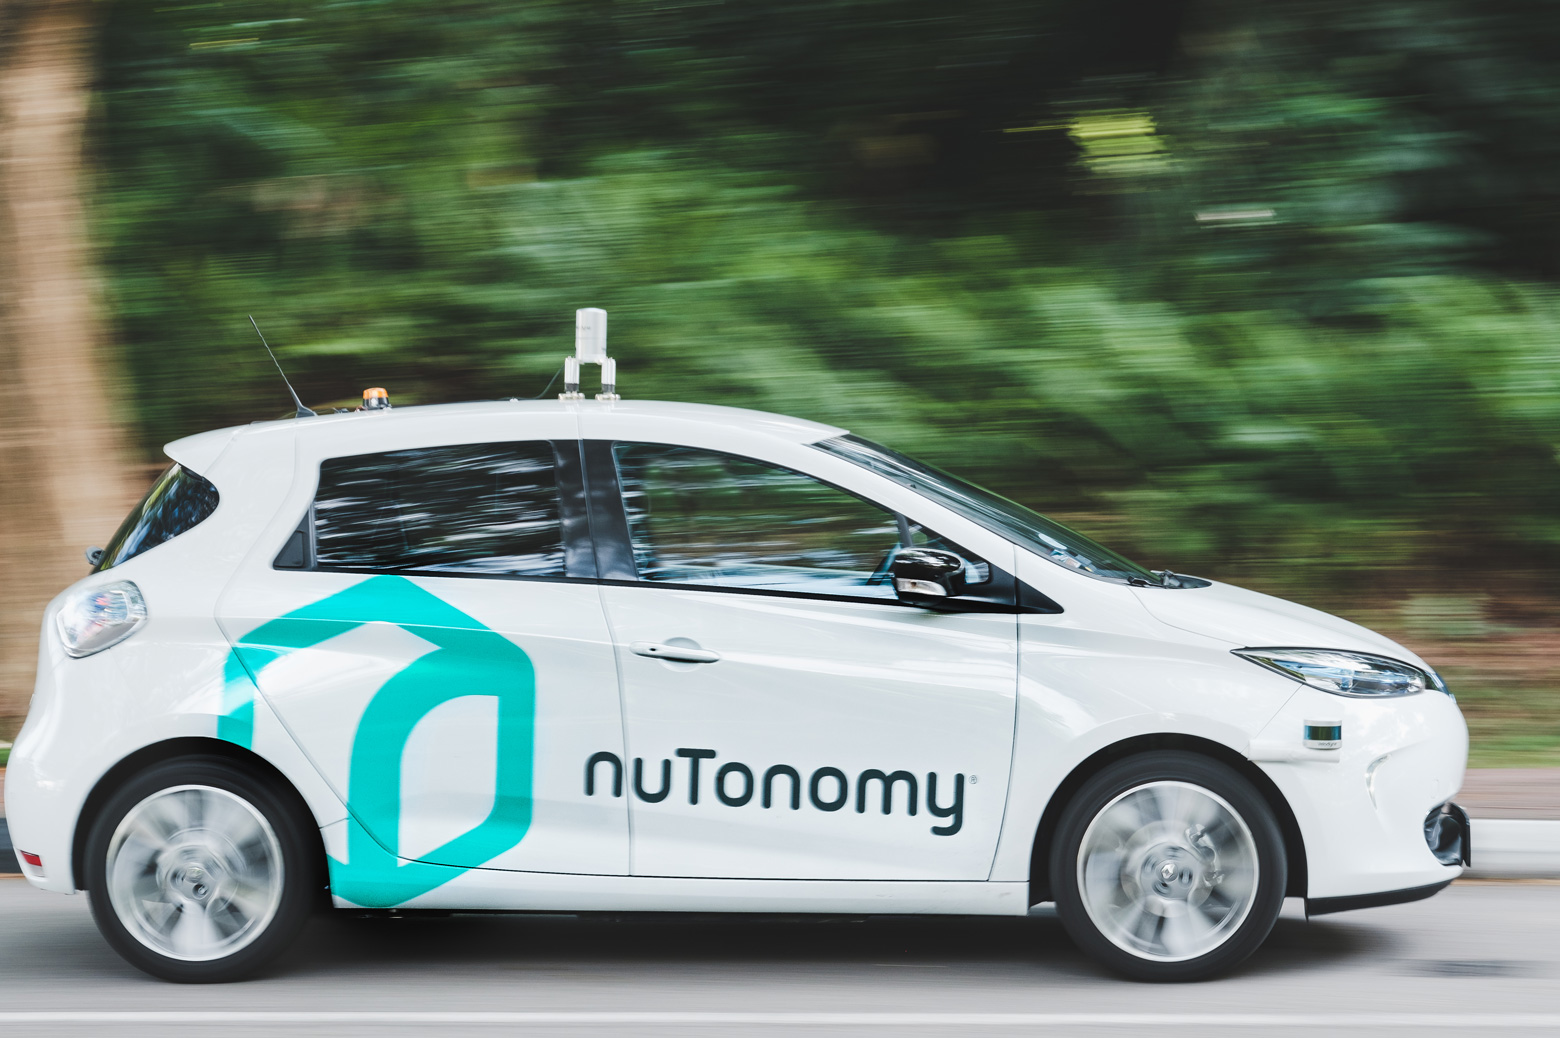 A nuTonomy car on the road